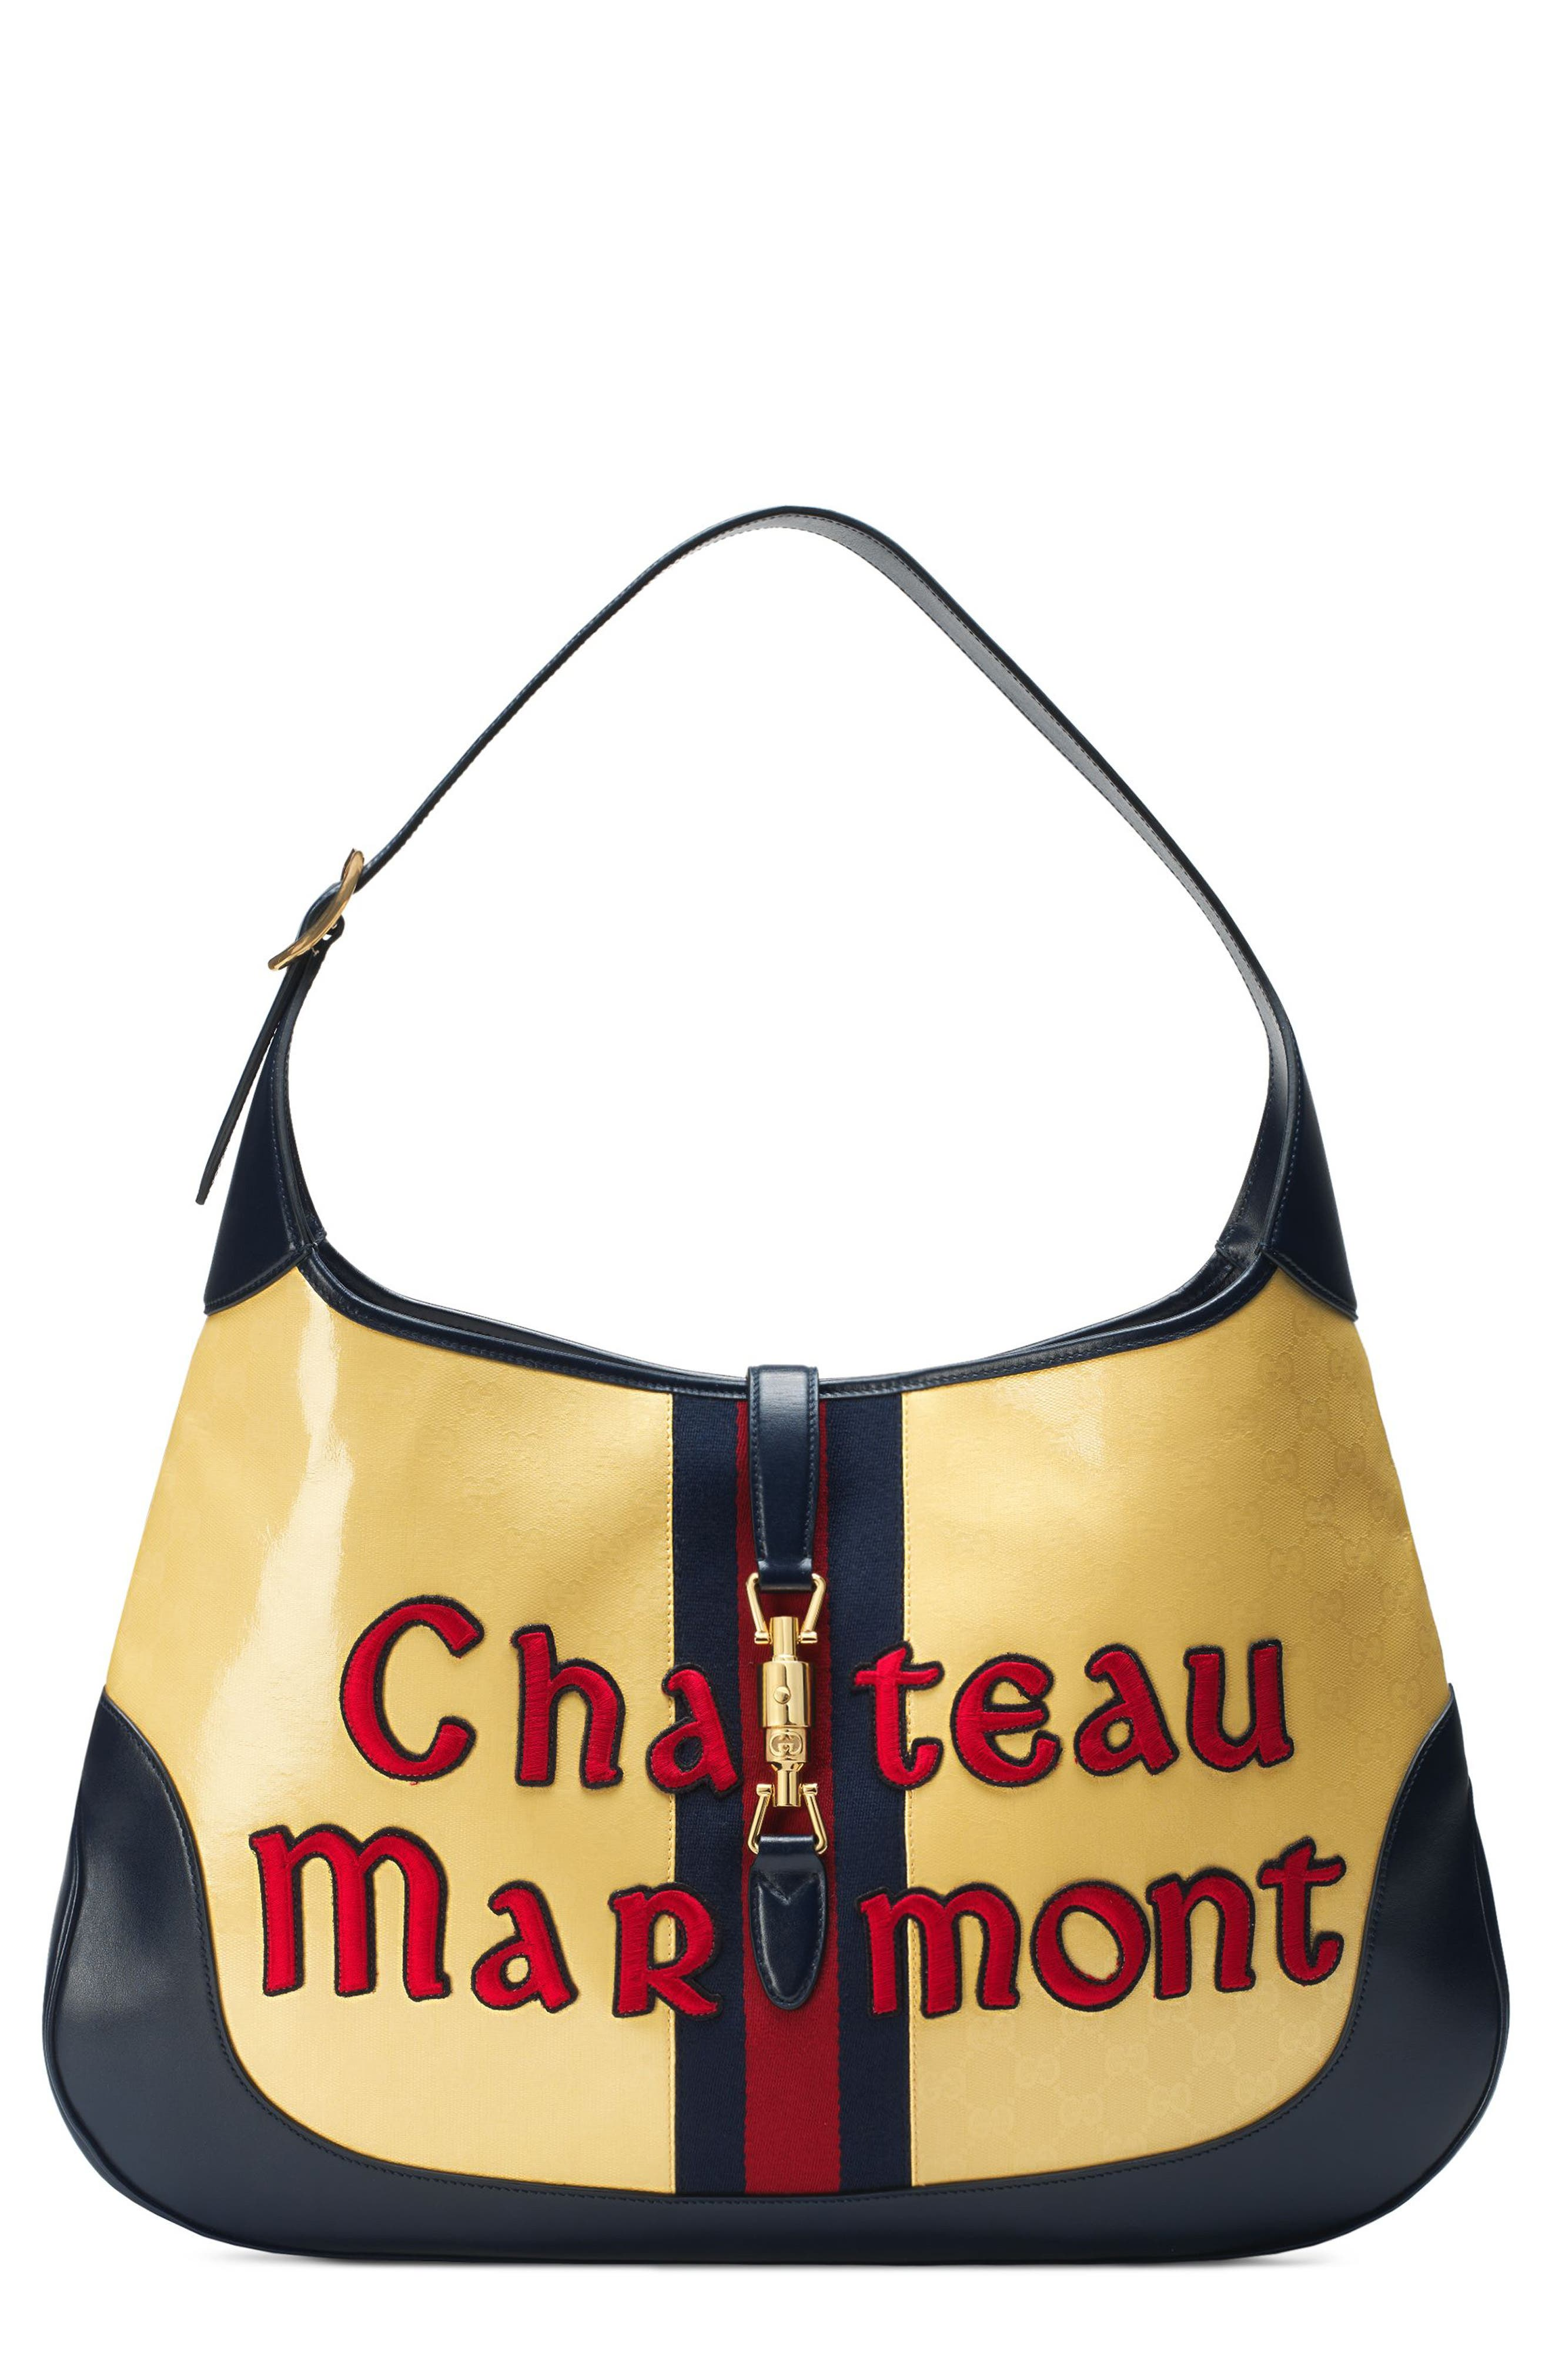 Maxi Jackie Chateau Marmont GG Hobo,                             Main thumbnail 1, color,                             STRAW YELLOW/ BLU/ RED